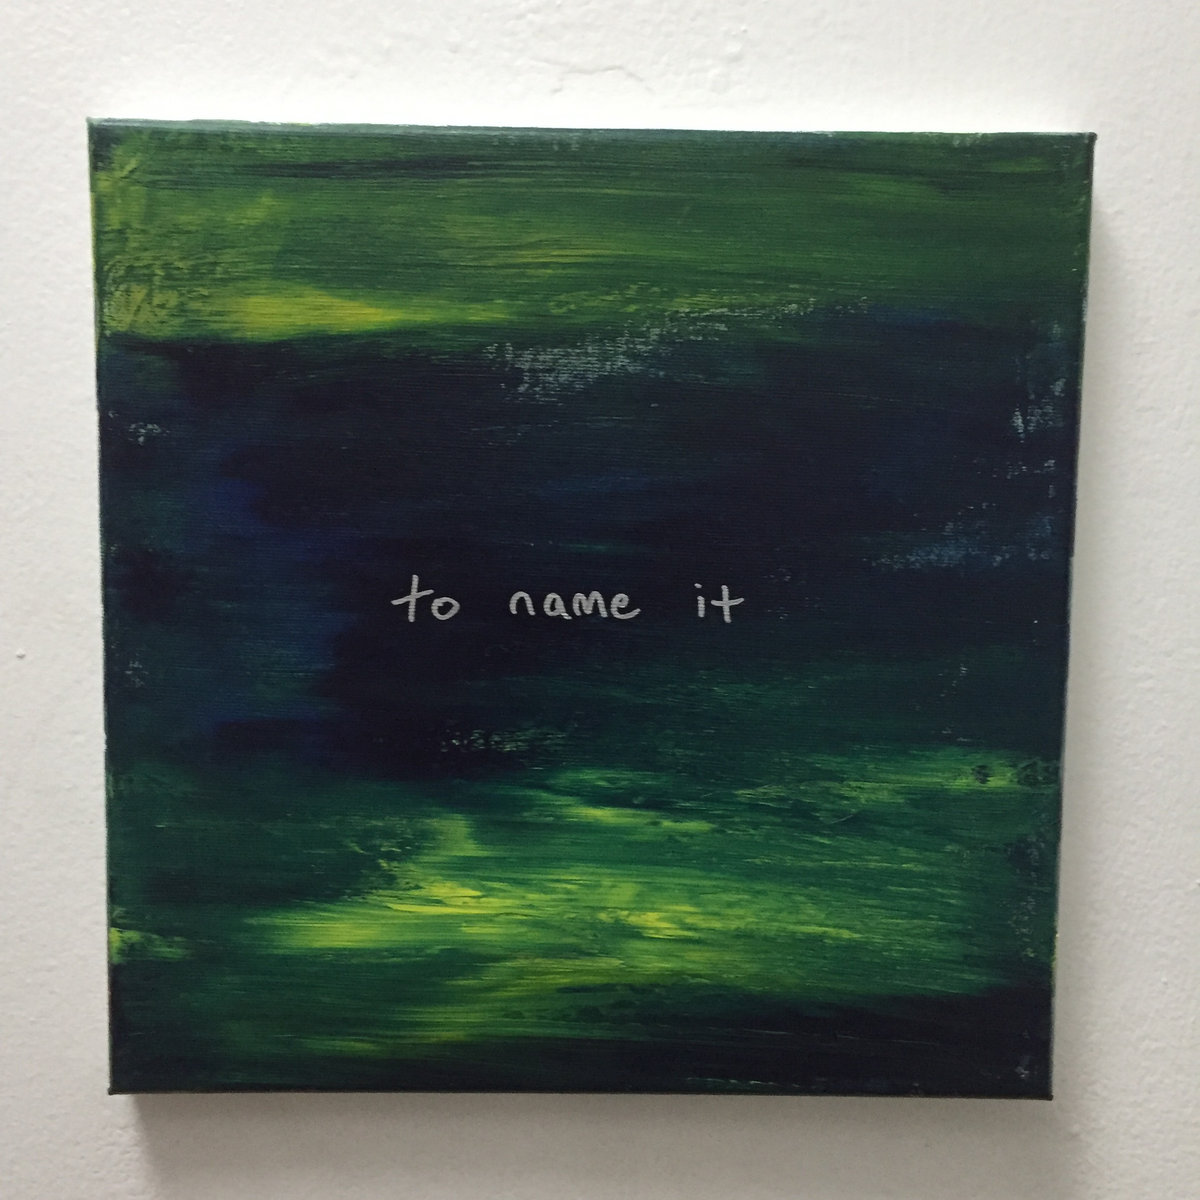 to name it painting 007 10x10 acrylic on canvas steel tipped dove